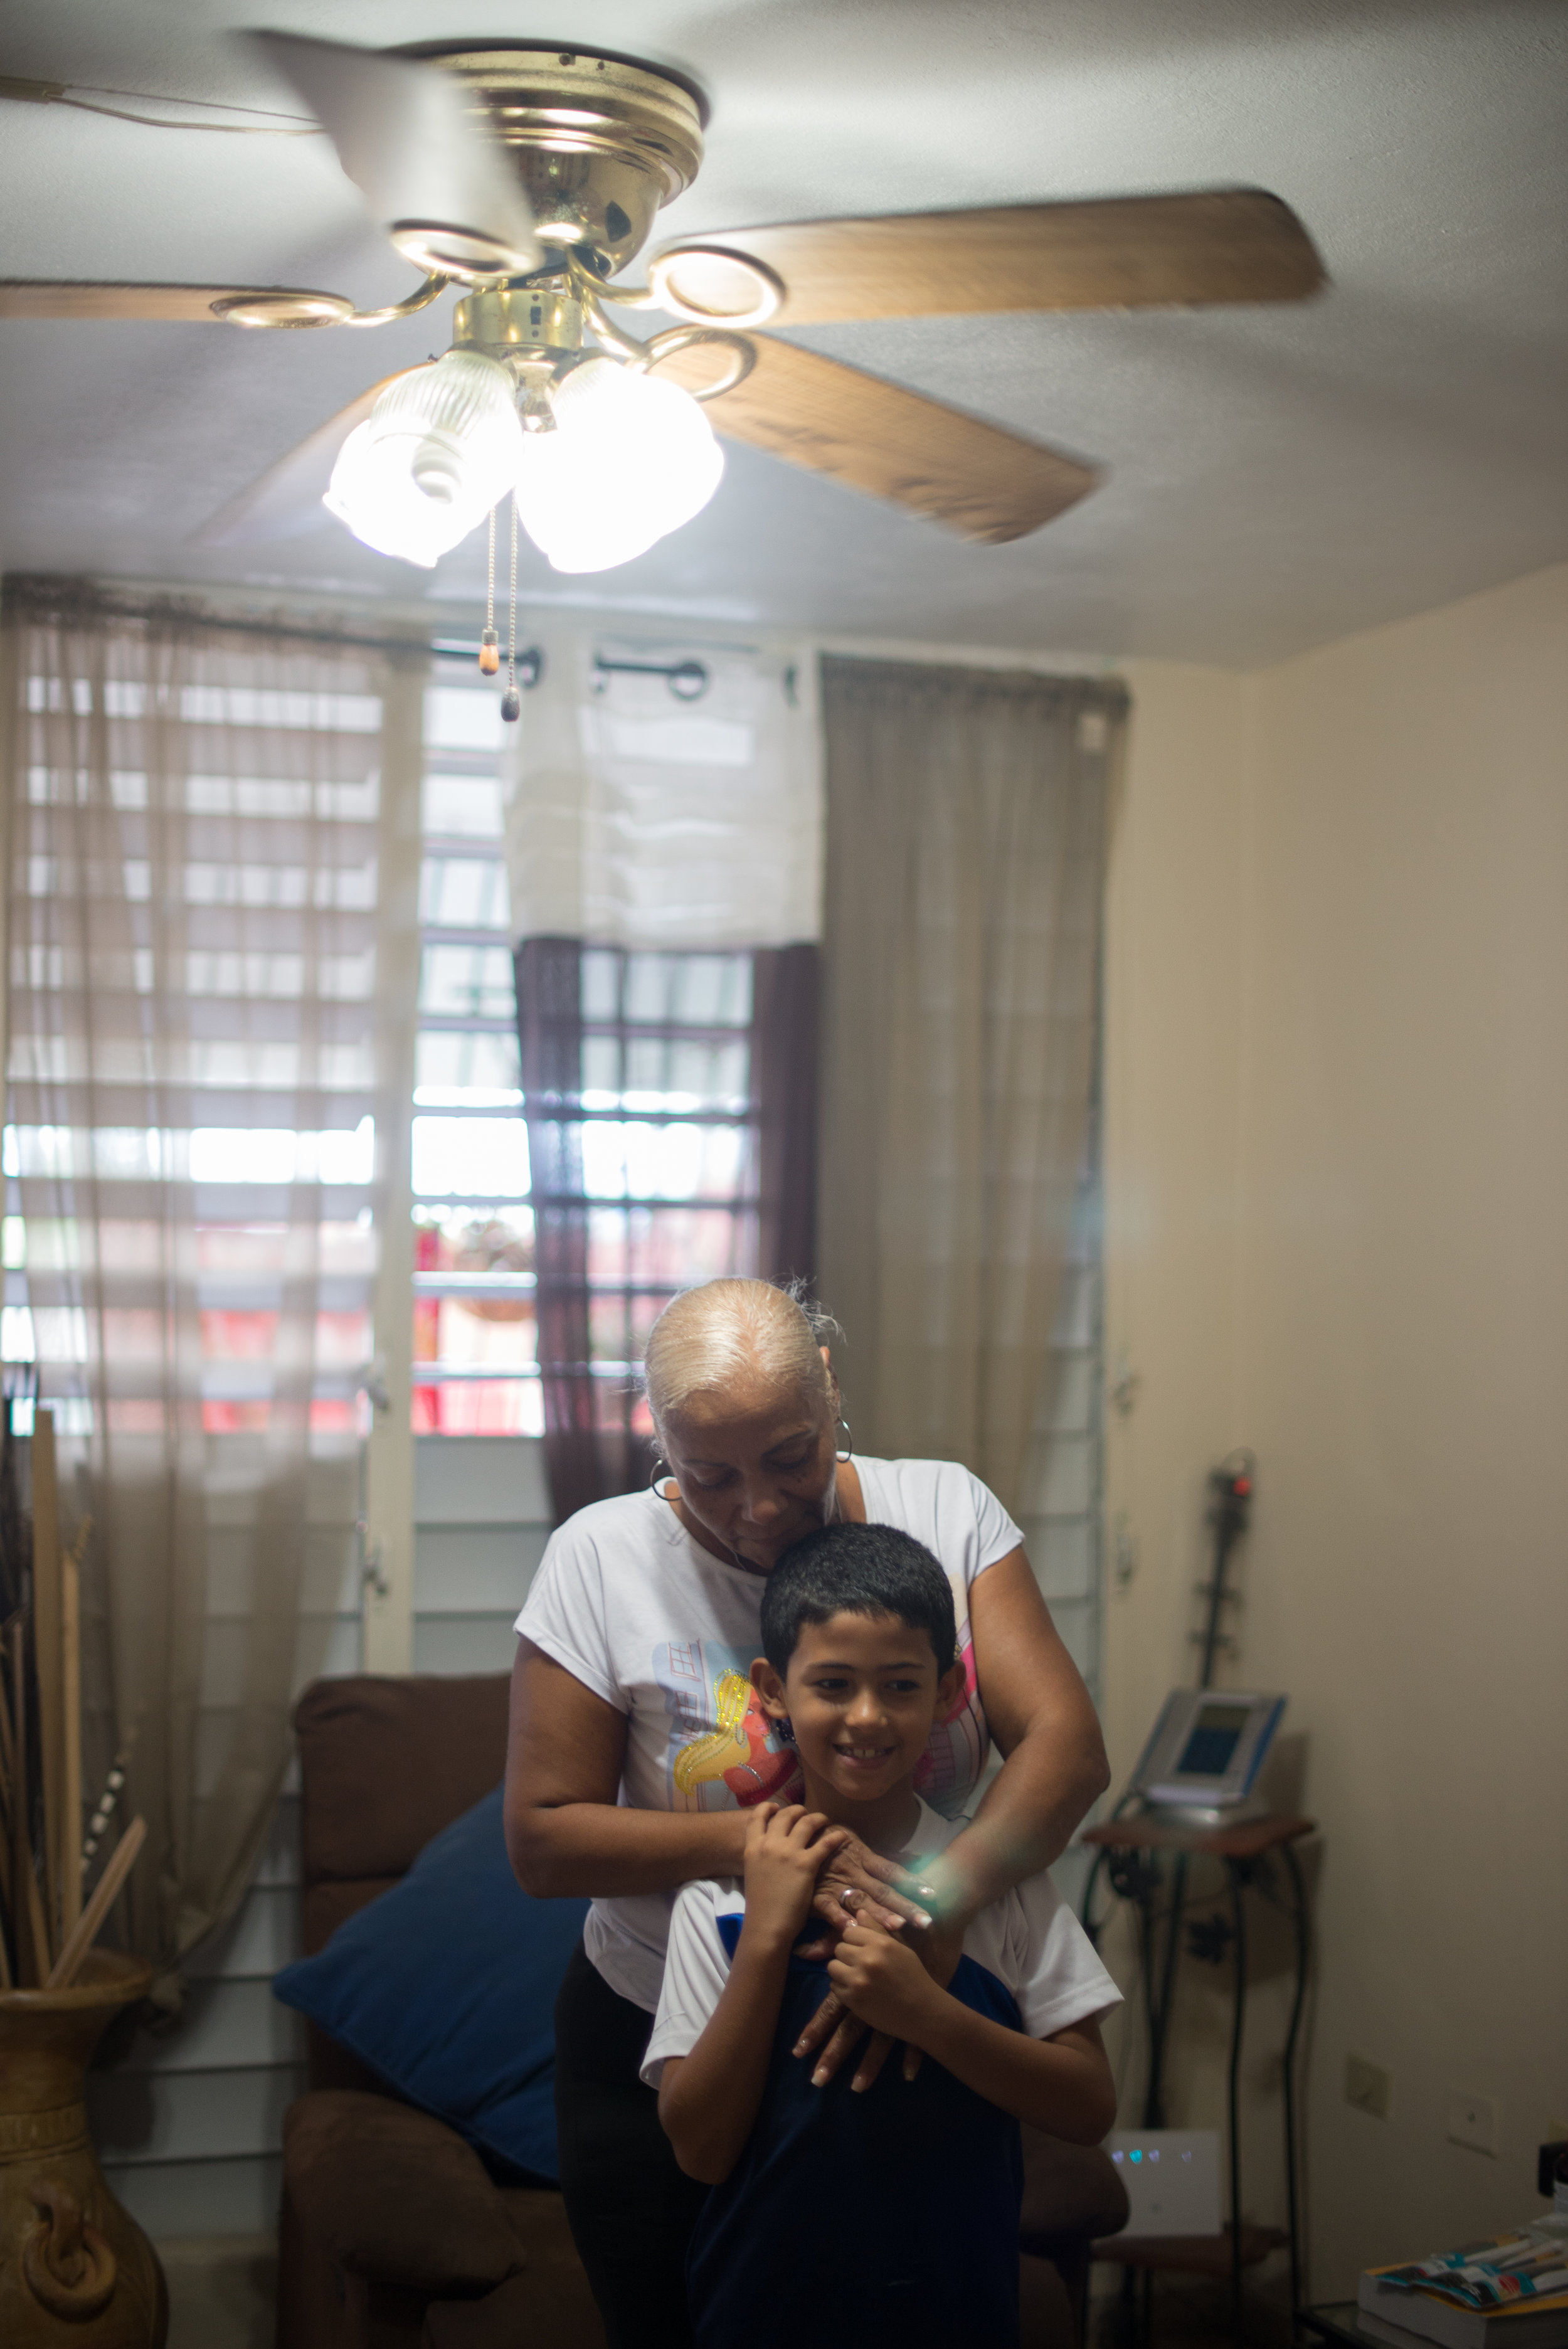 6/9/18 – Bayamón, Puerto Rico – Jayson Grau is a student in the second grade at Aurelio Perez Martinez, one of the schools set to close before the Fall. His grandmother Wanda takes the kids to school while their mother works, and lives at an apartment nearby to theirs so that she can help take care of the whole family.